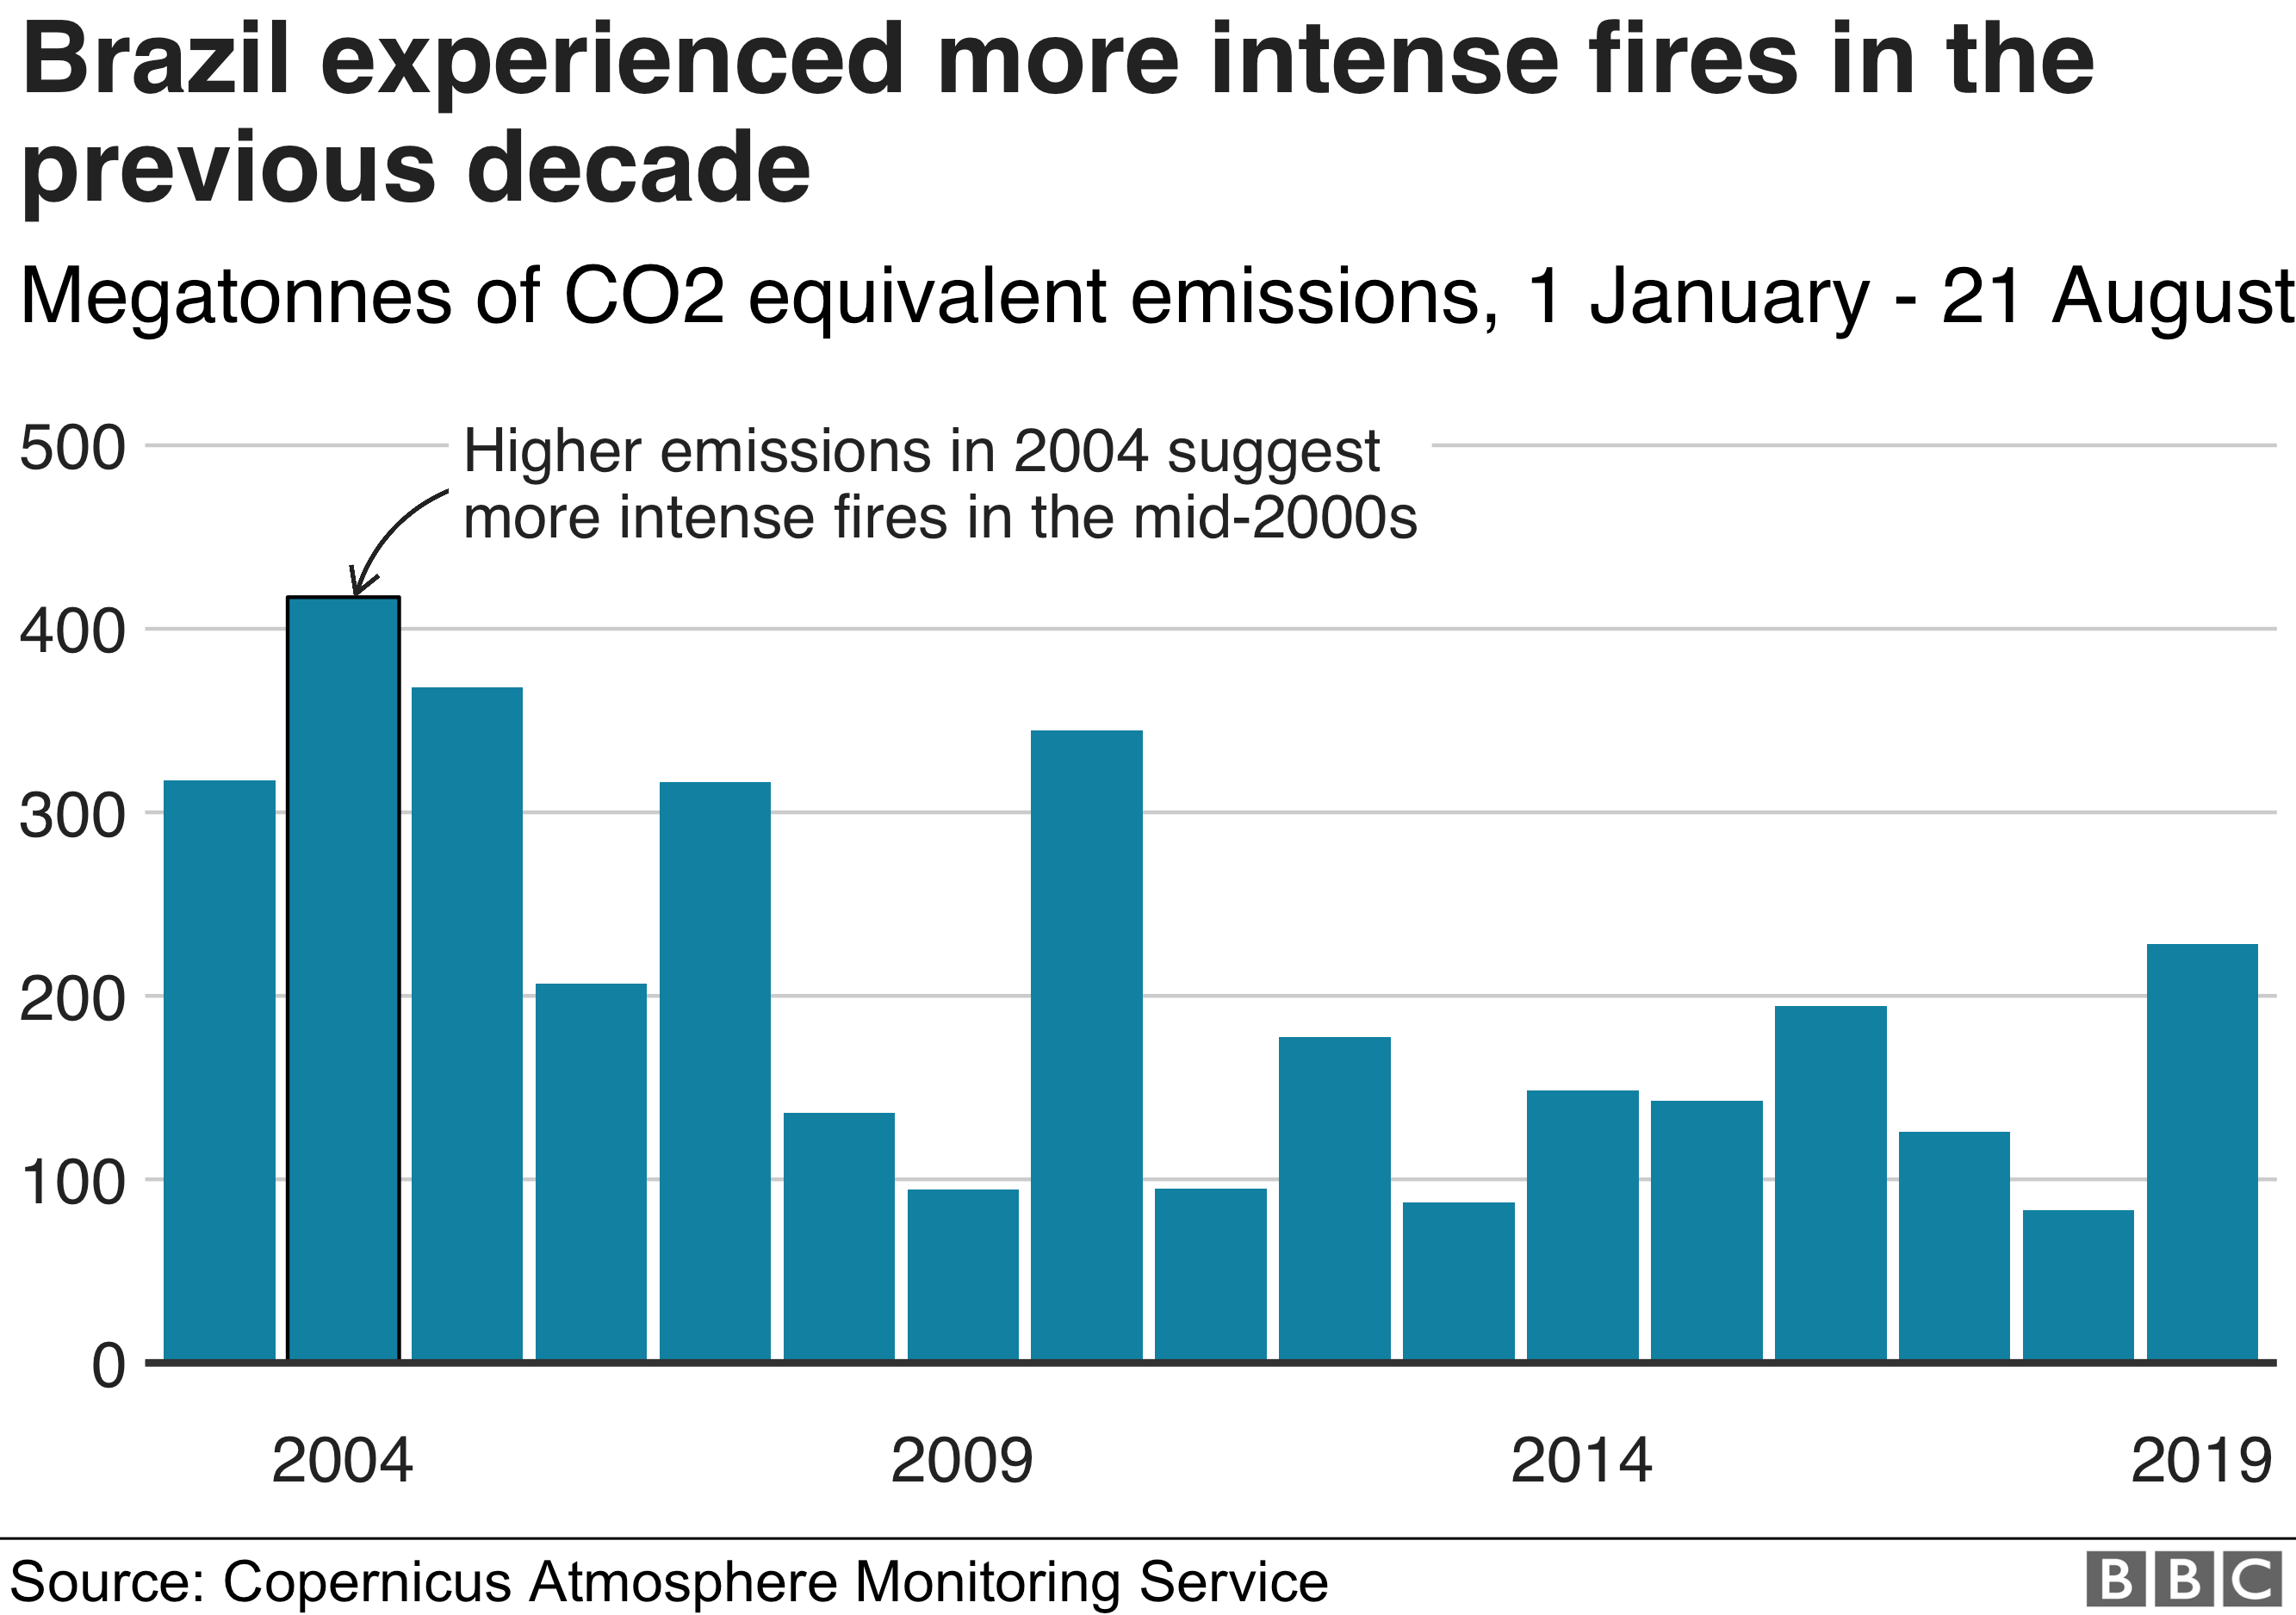 Bar chart showing CO2 emissions from Amazon fires in Brazil